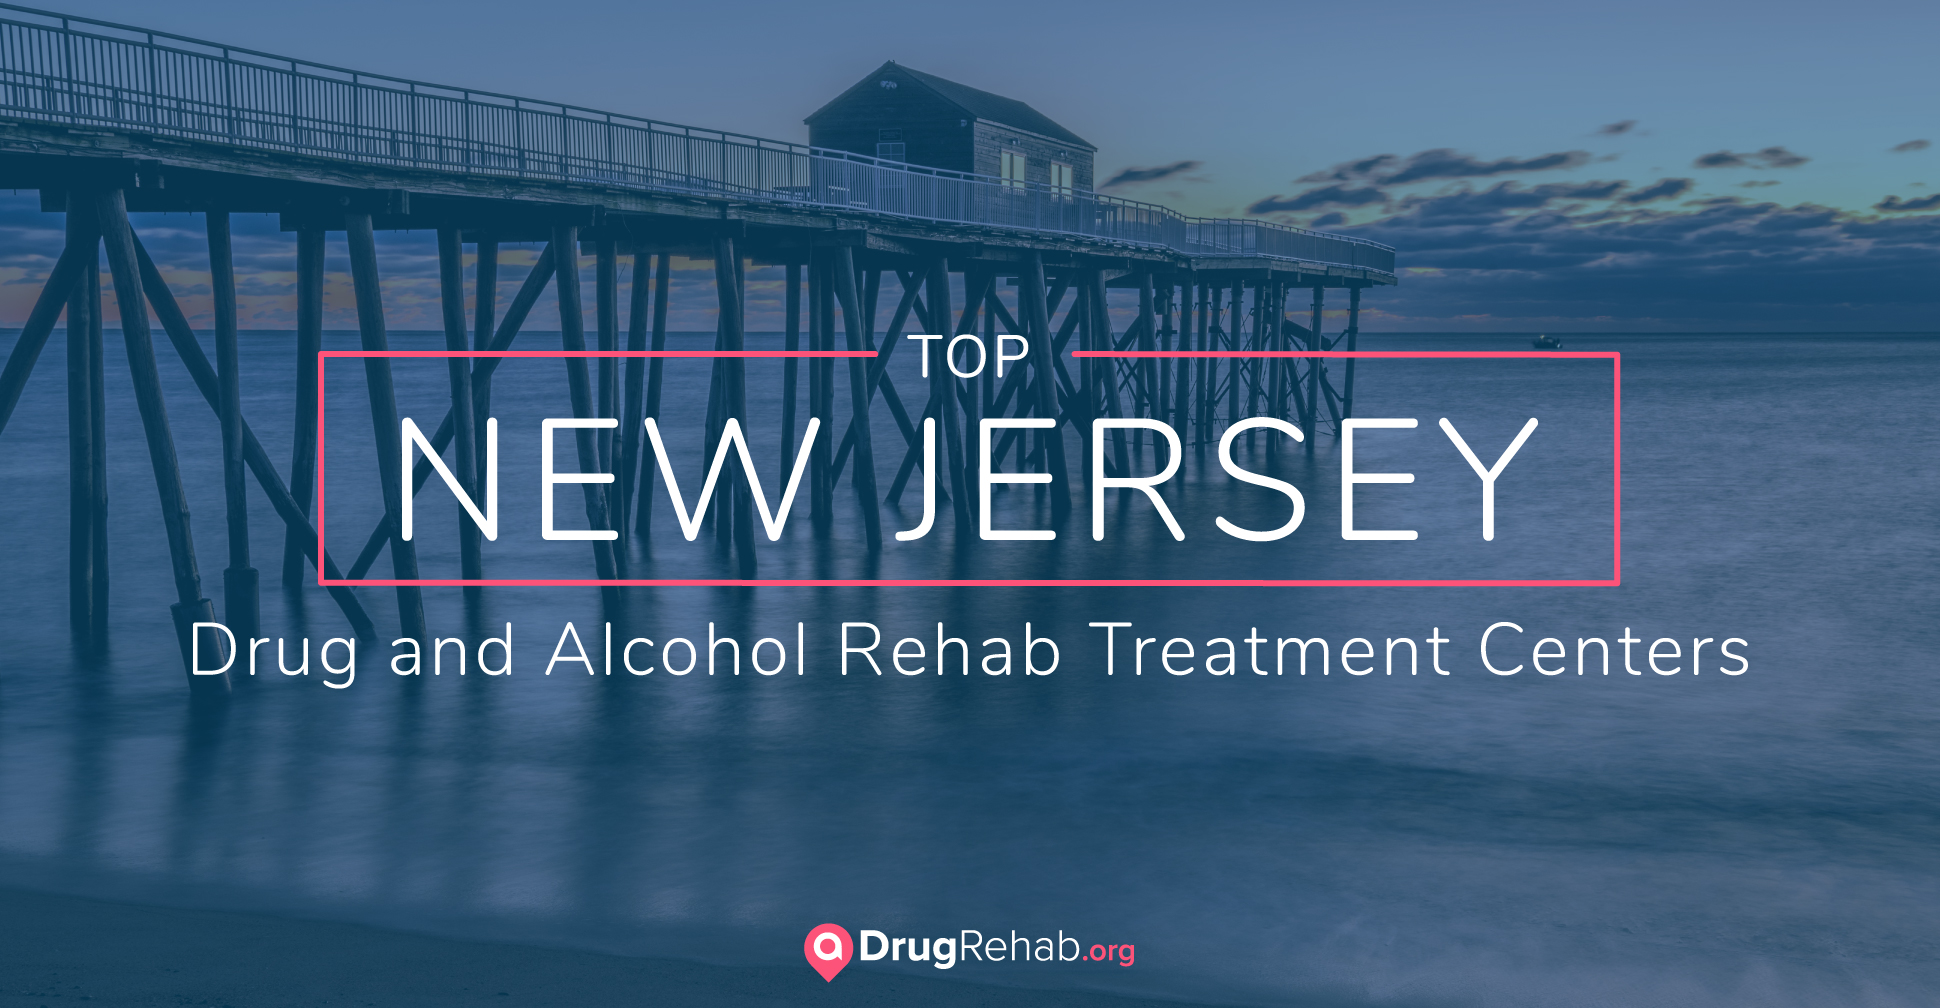 Top 7 New Jersey Drug and Alcohol Rehab Centers